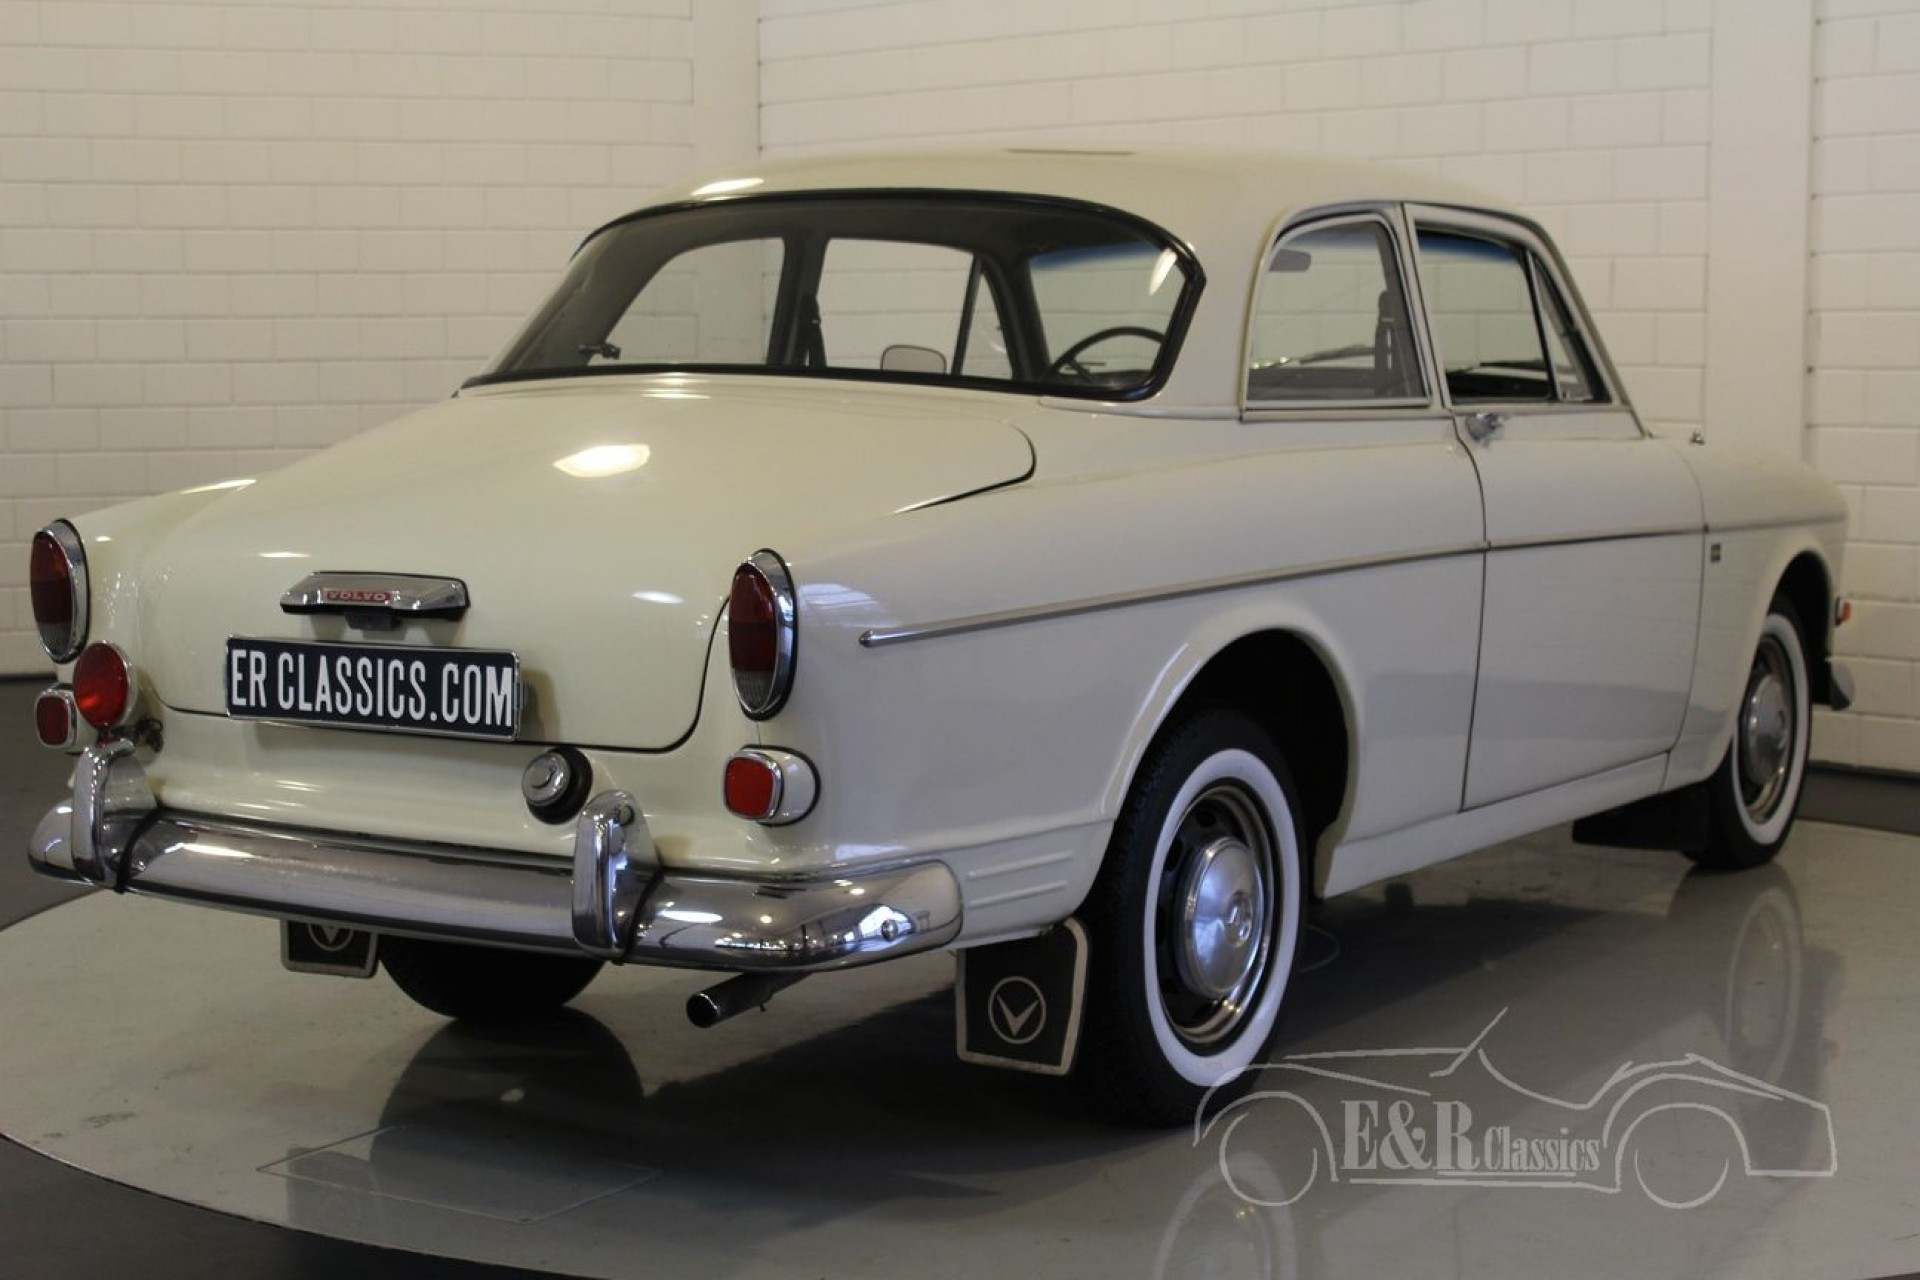 Volvo Amazon Volvo Amazon 121 1968 For Sale At Erclassics